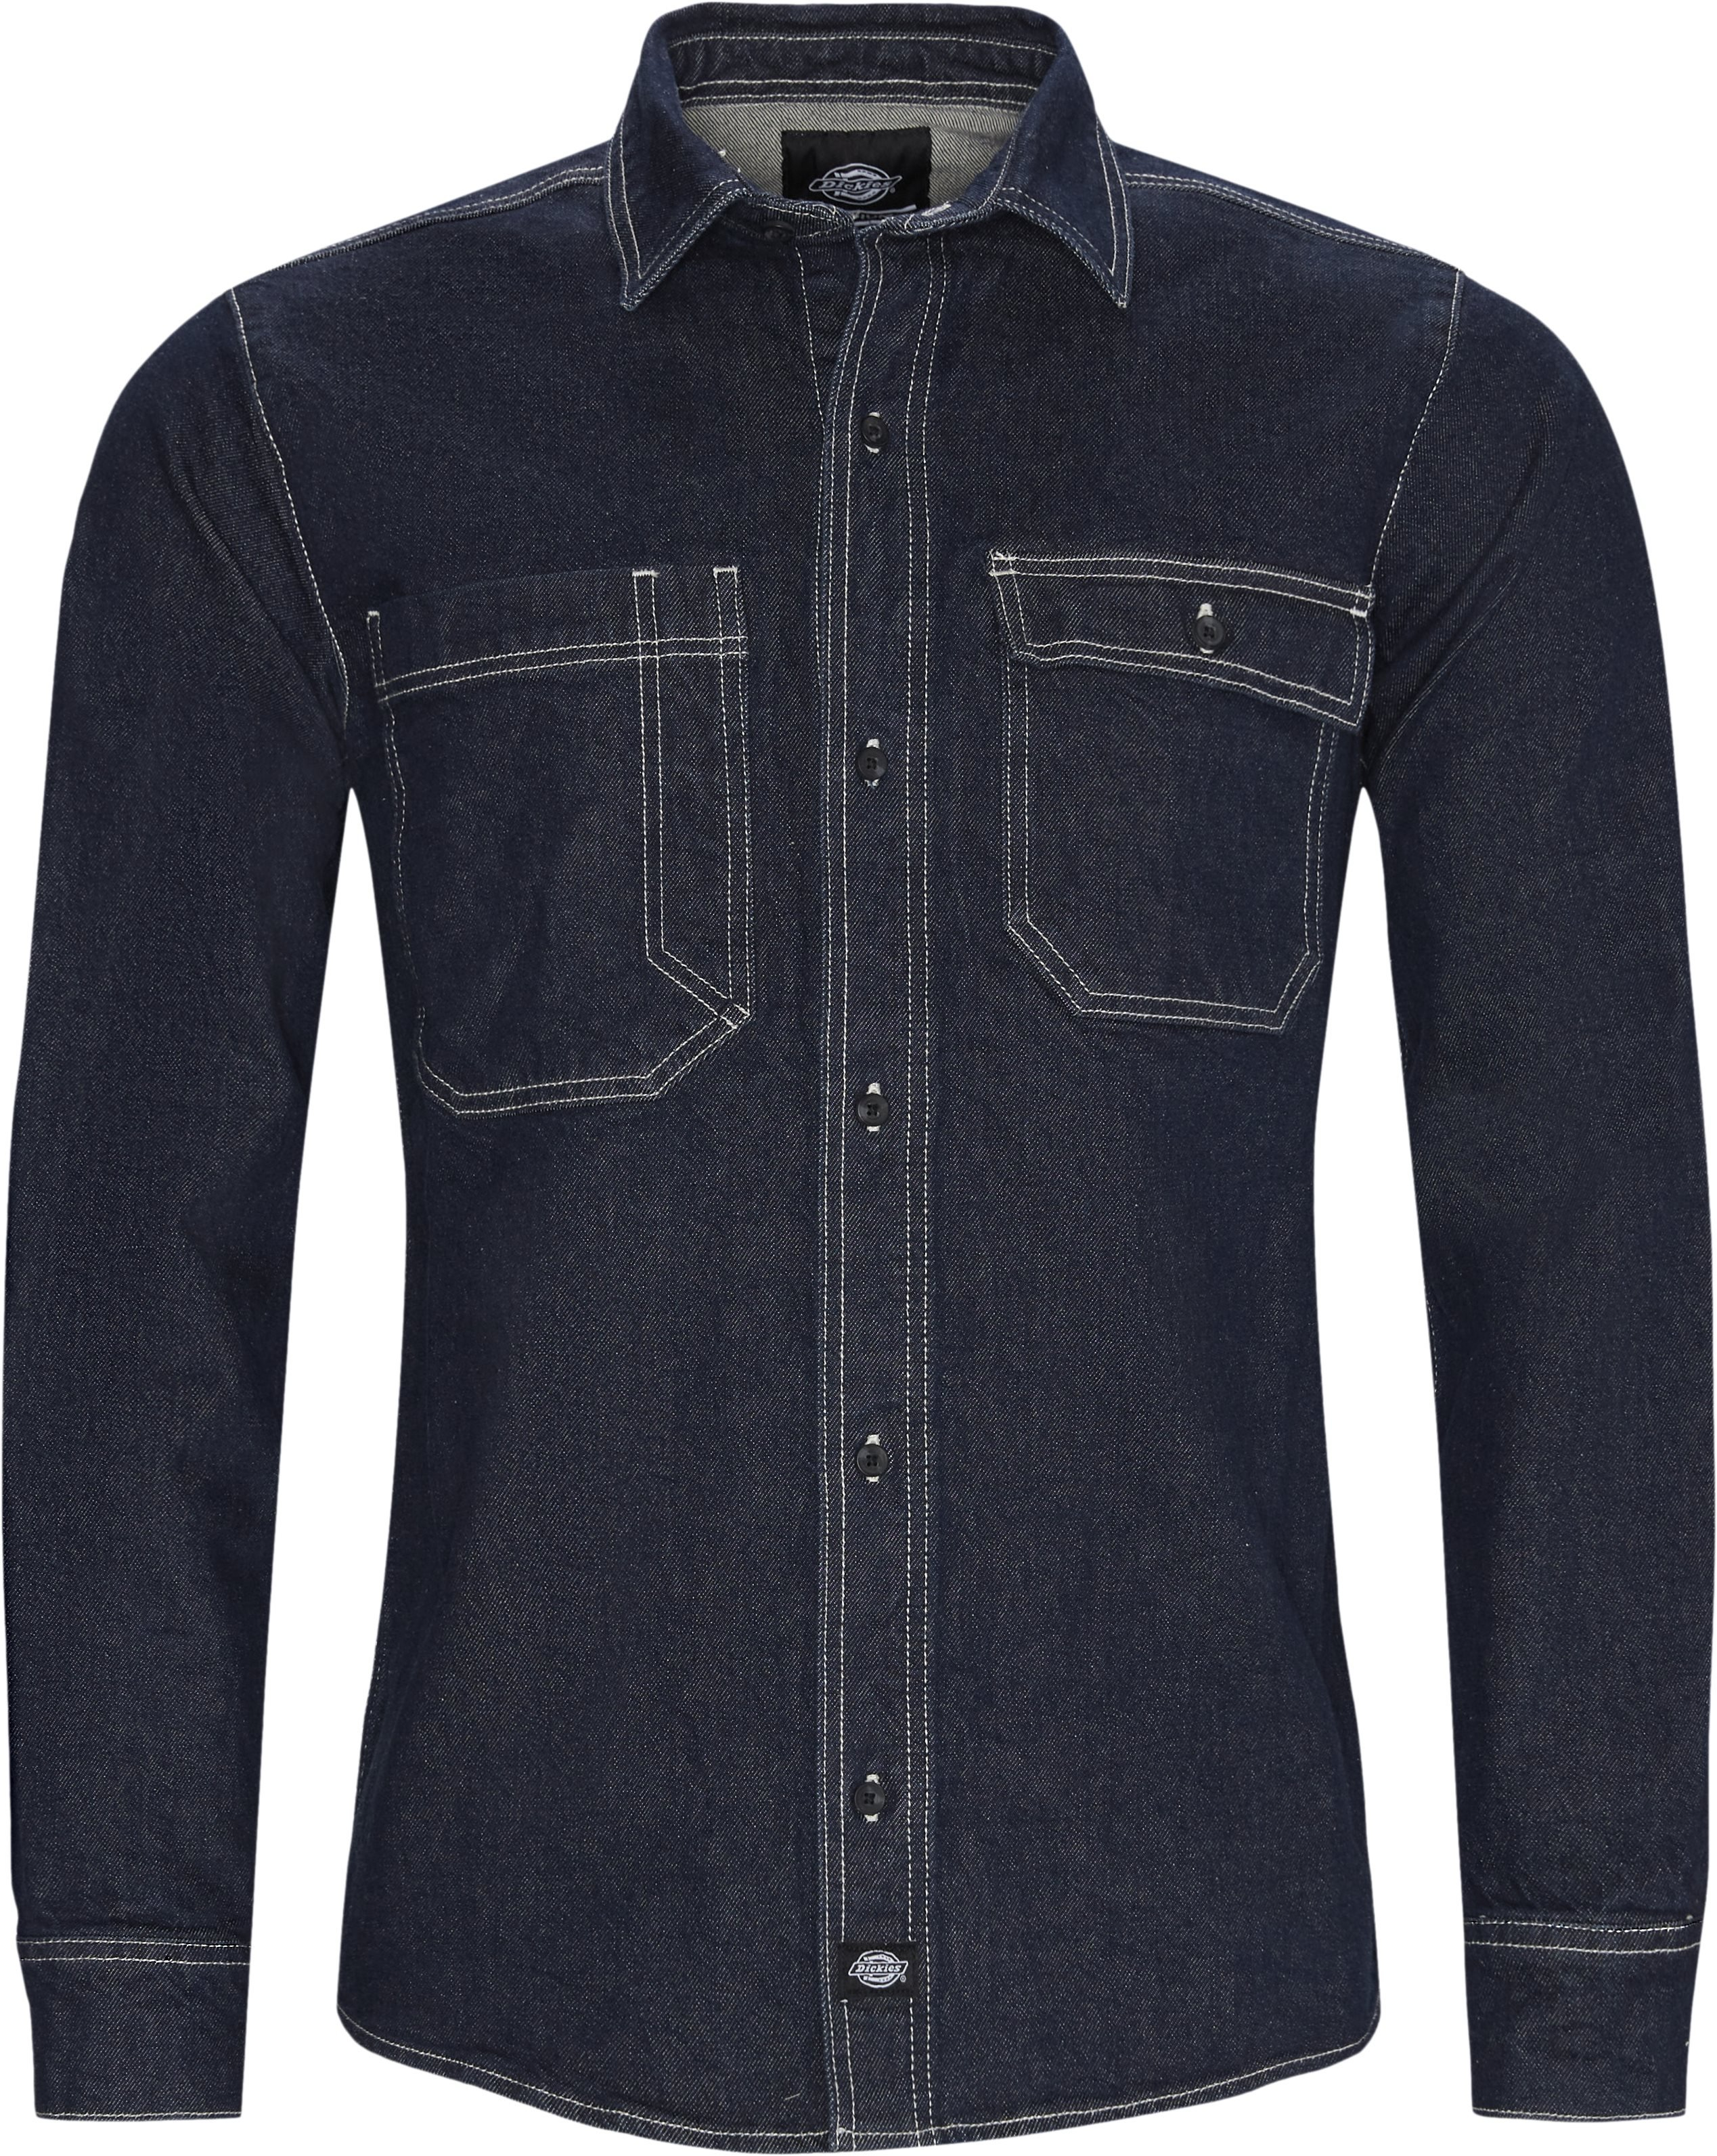 Paincourtville Denim Shirt - Skjorter - Regular - Denim